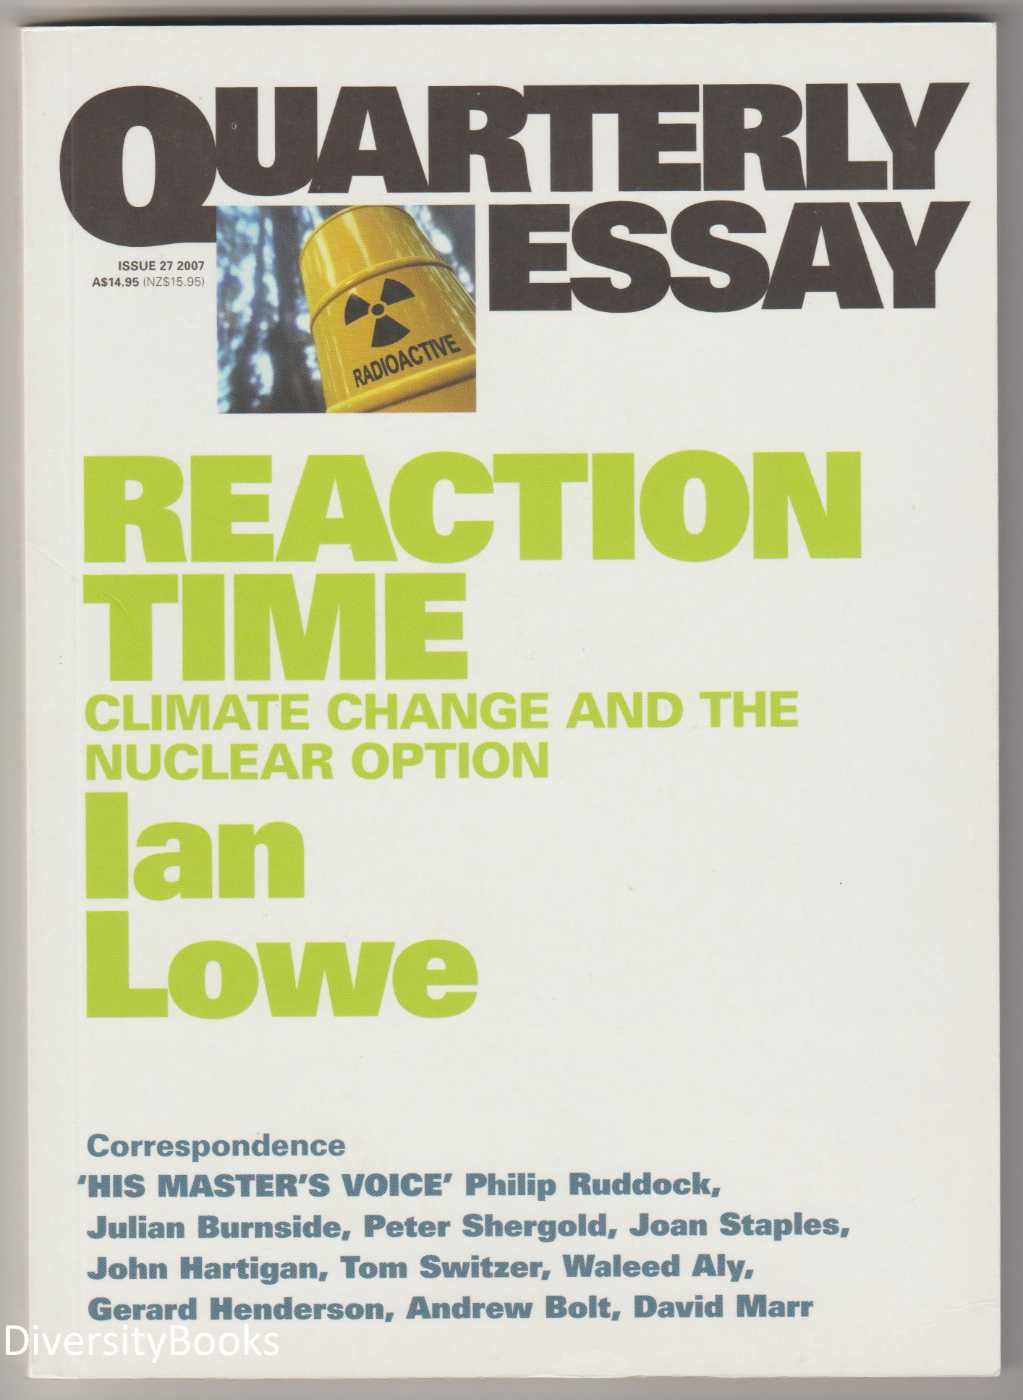 quarterly essay 27 reaction time climate change and the nuclear option ian lowe